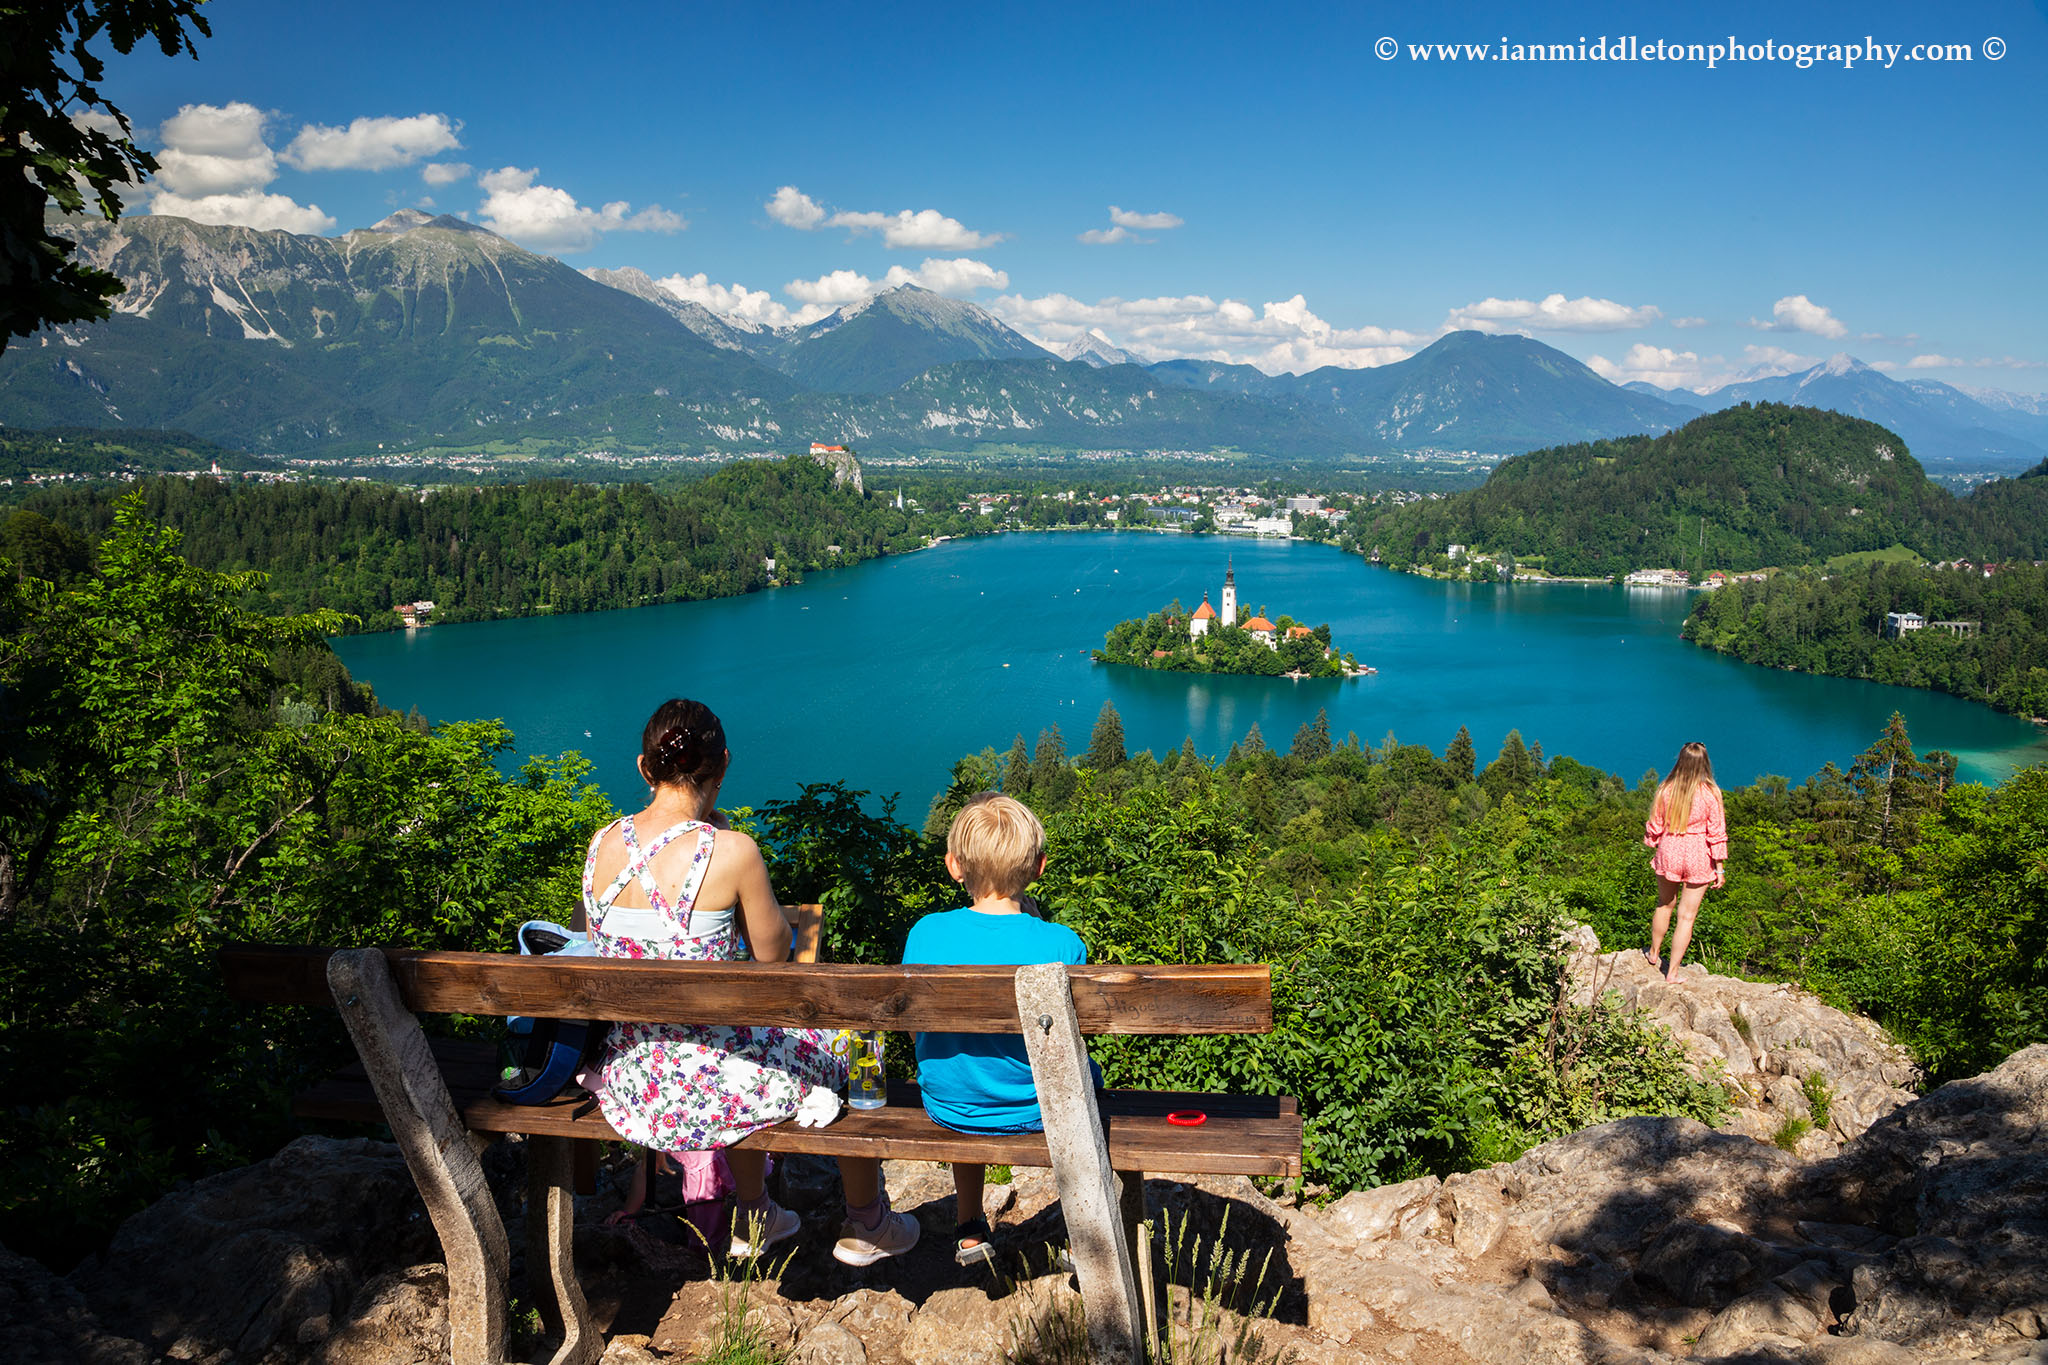 Enjoying the view across Lake Bled to the island church and clifftop castle from Ojstrica, Slovenia.